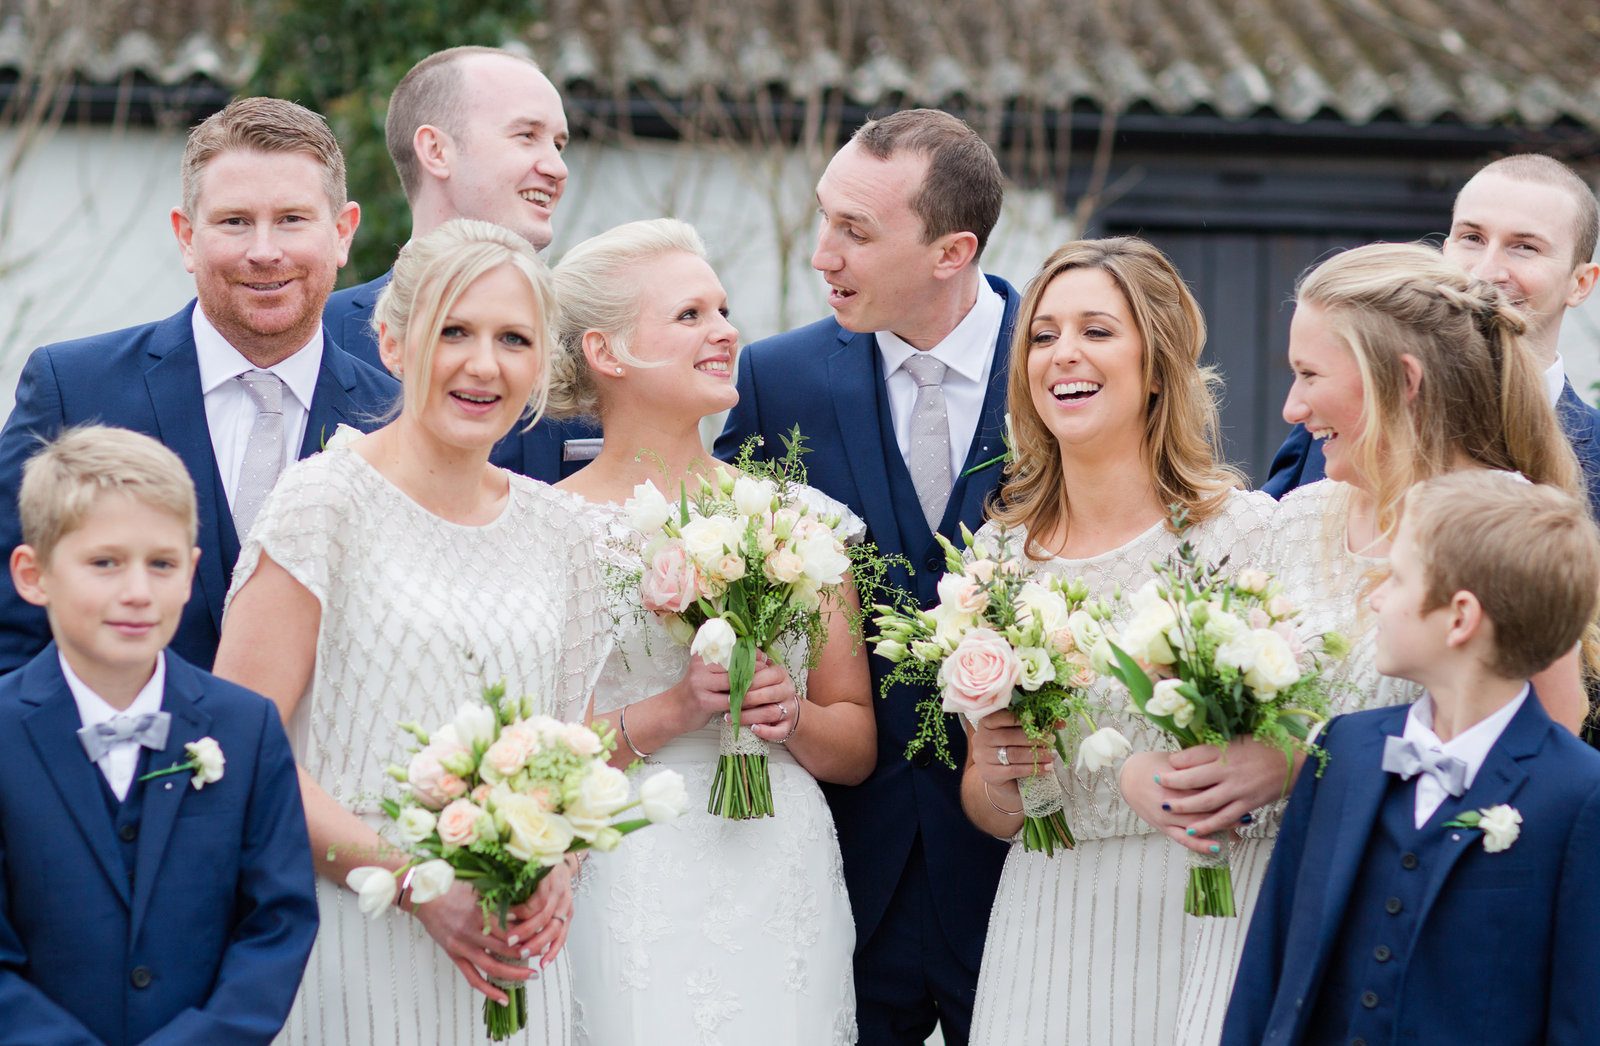 adorlee-0928-southend-barns-wedding-photographer-chichester-west-sussex